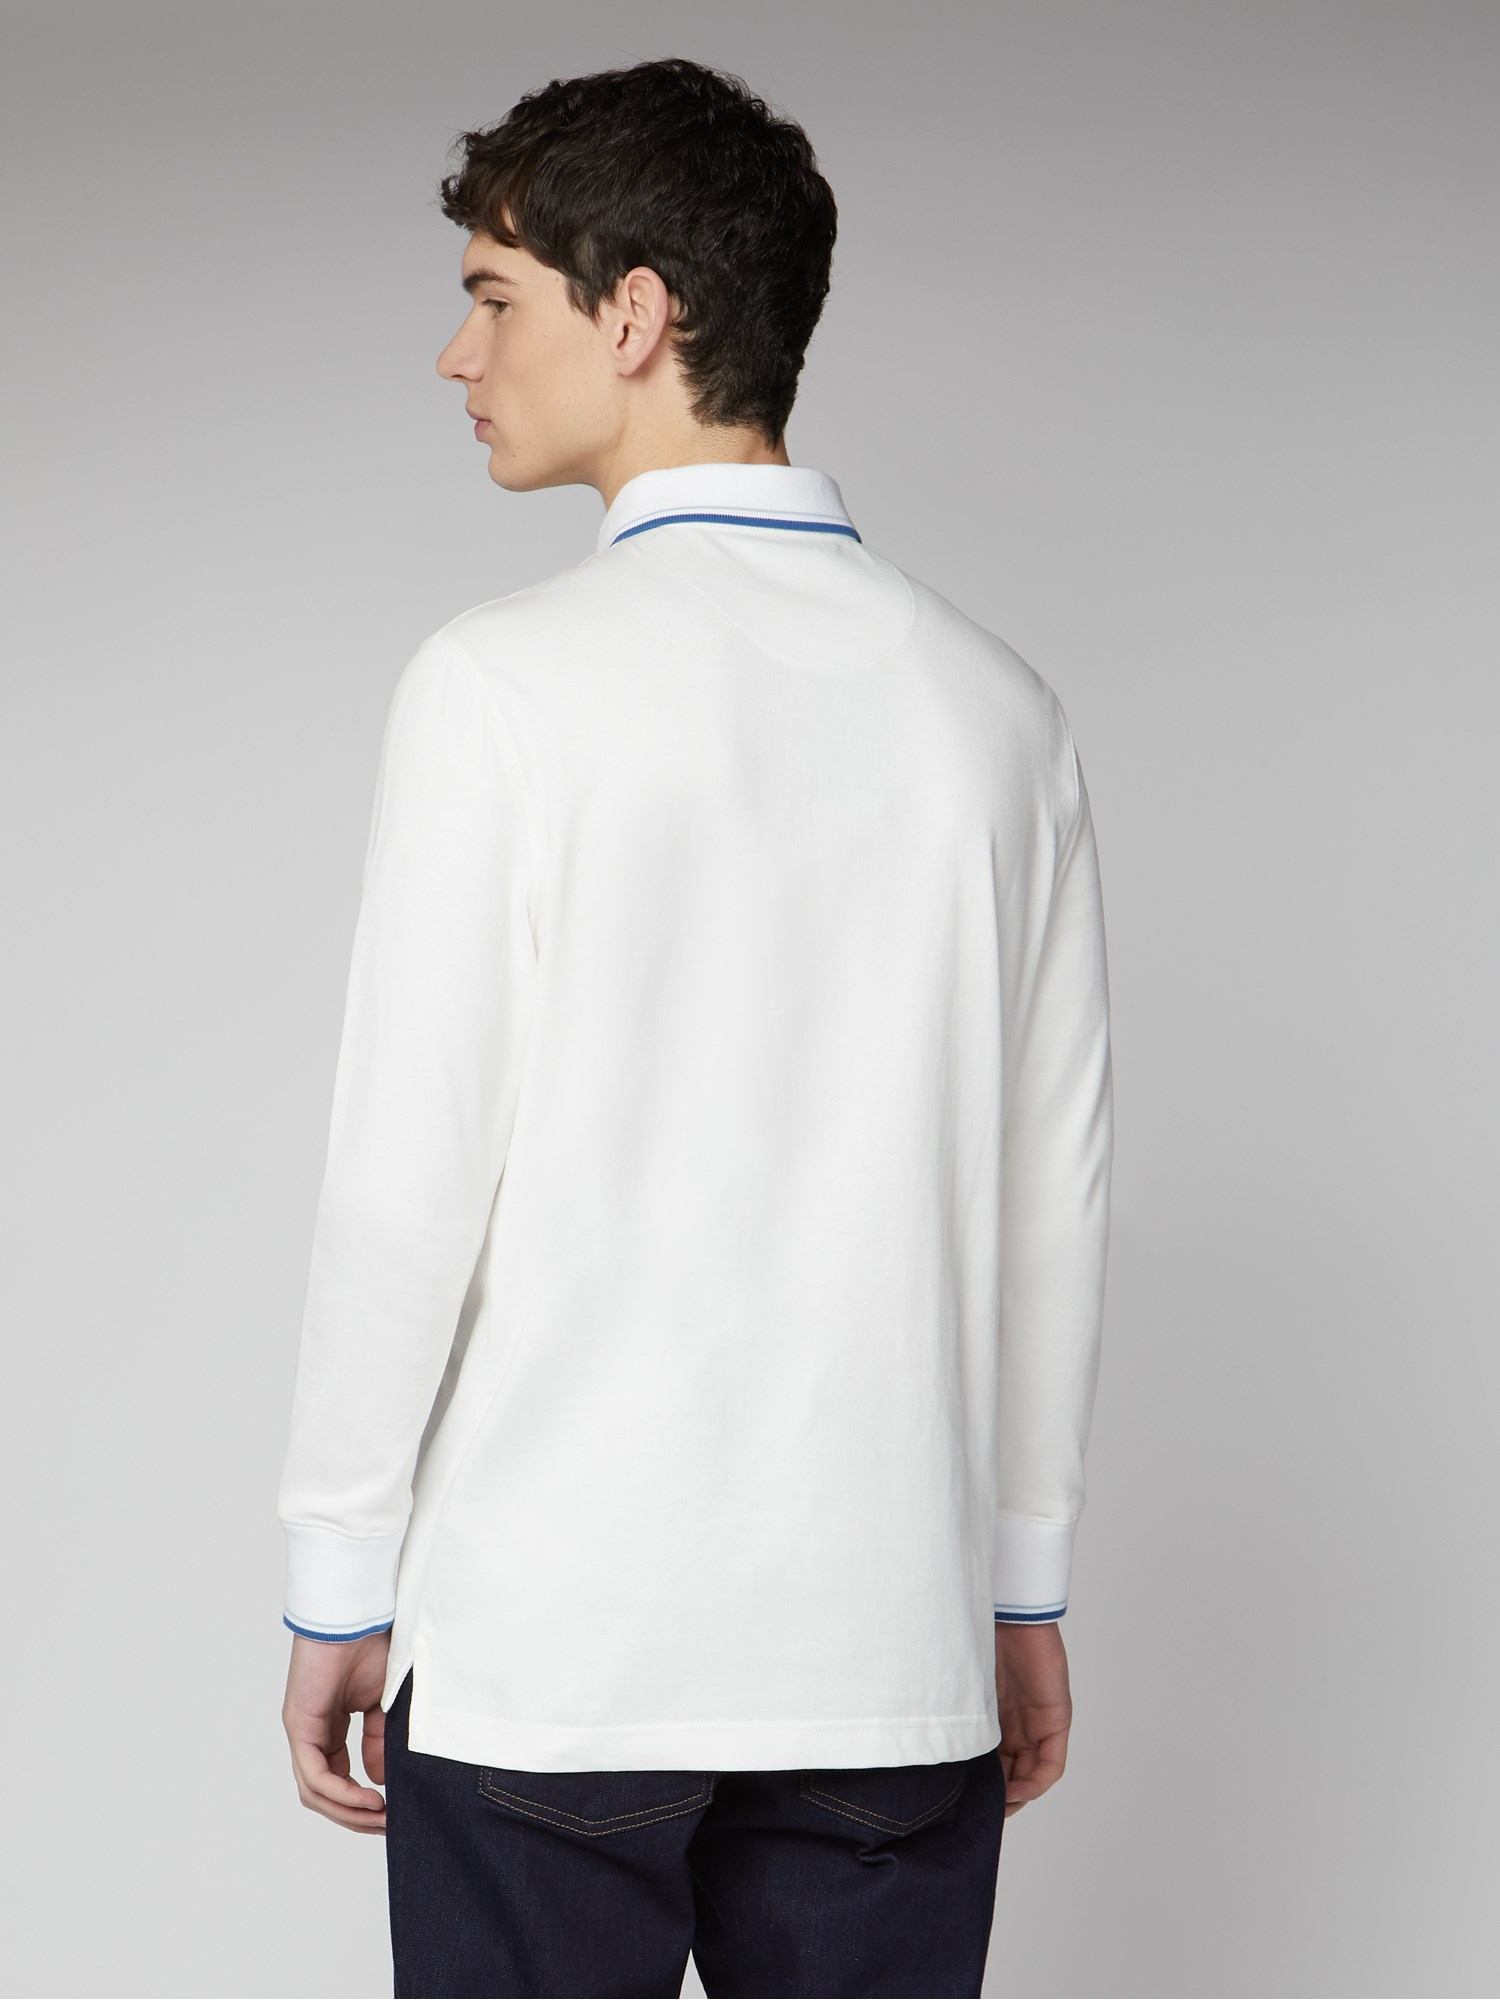 White Long Sleeved Rugby Shirt